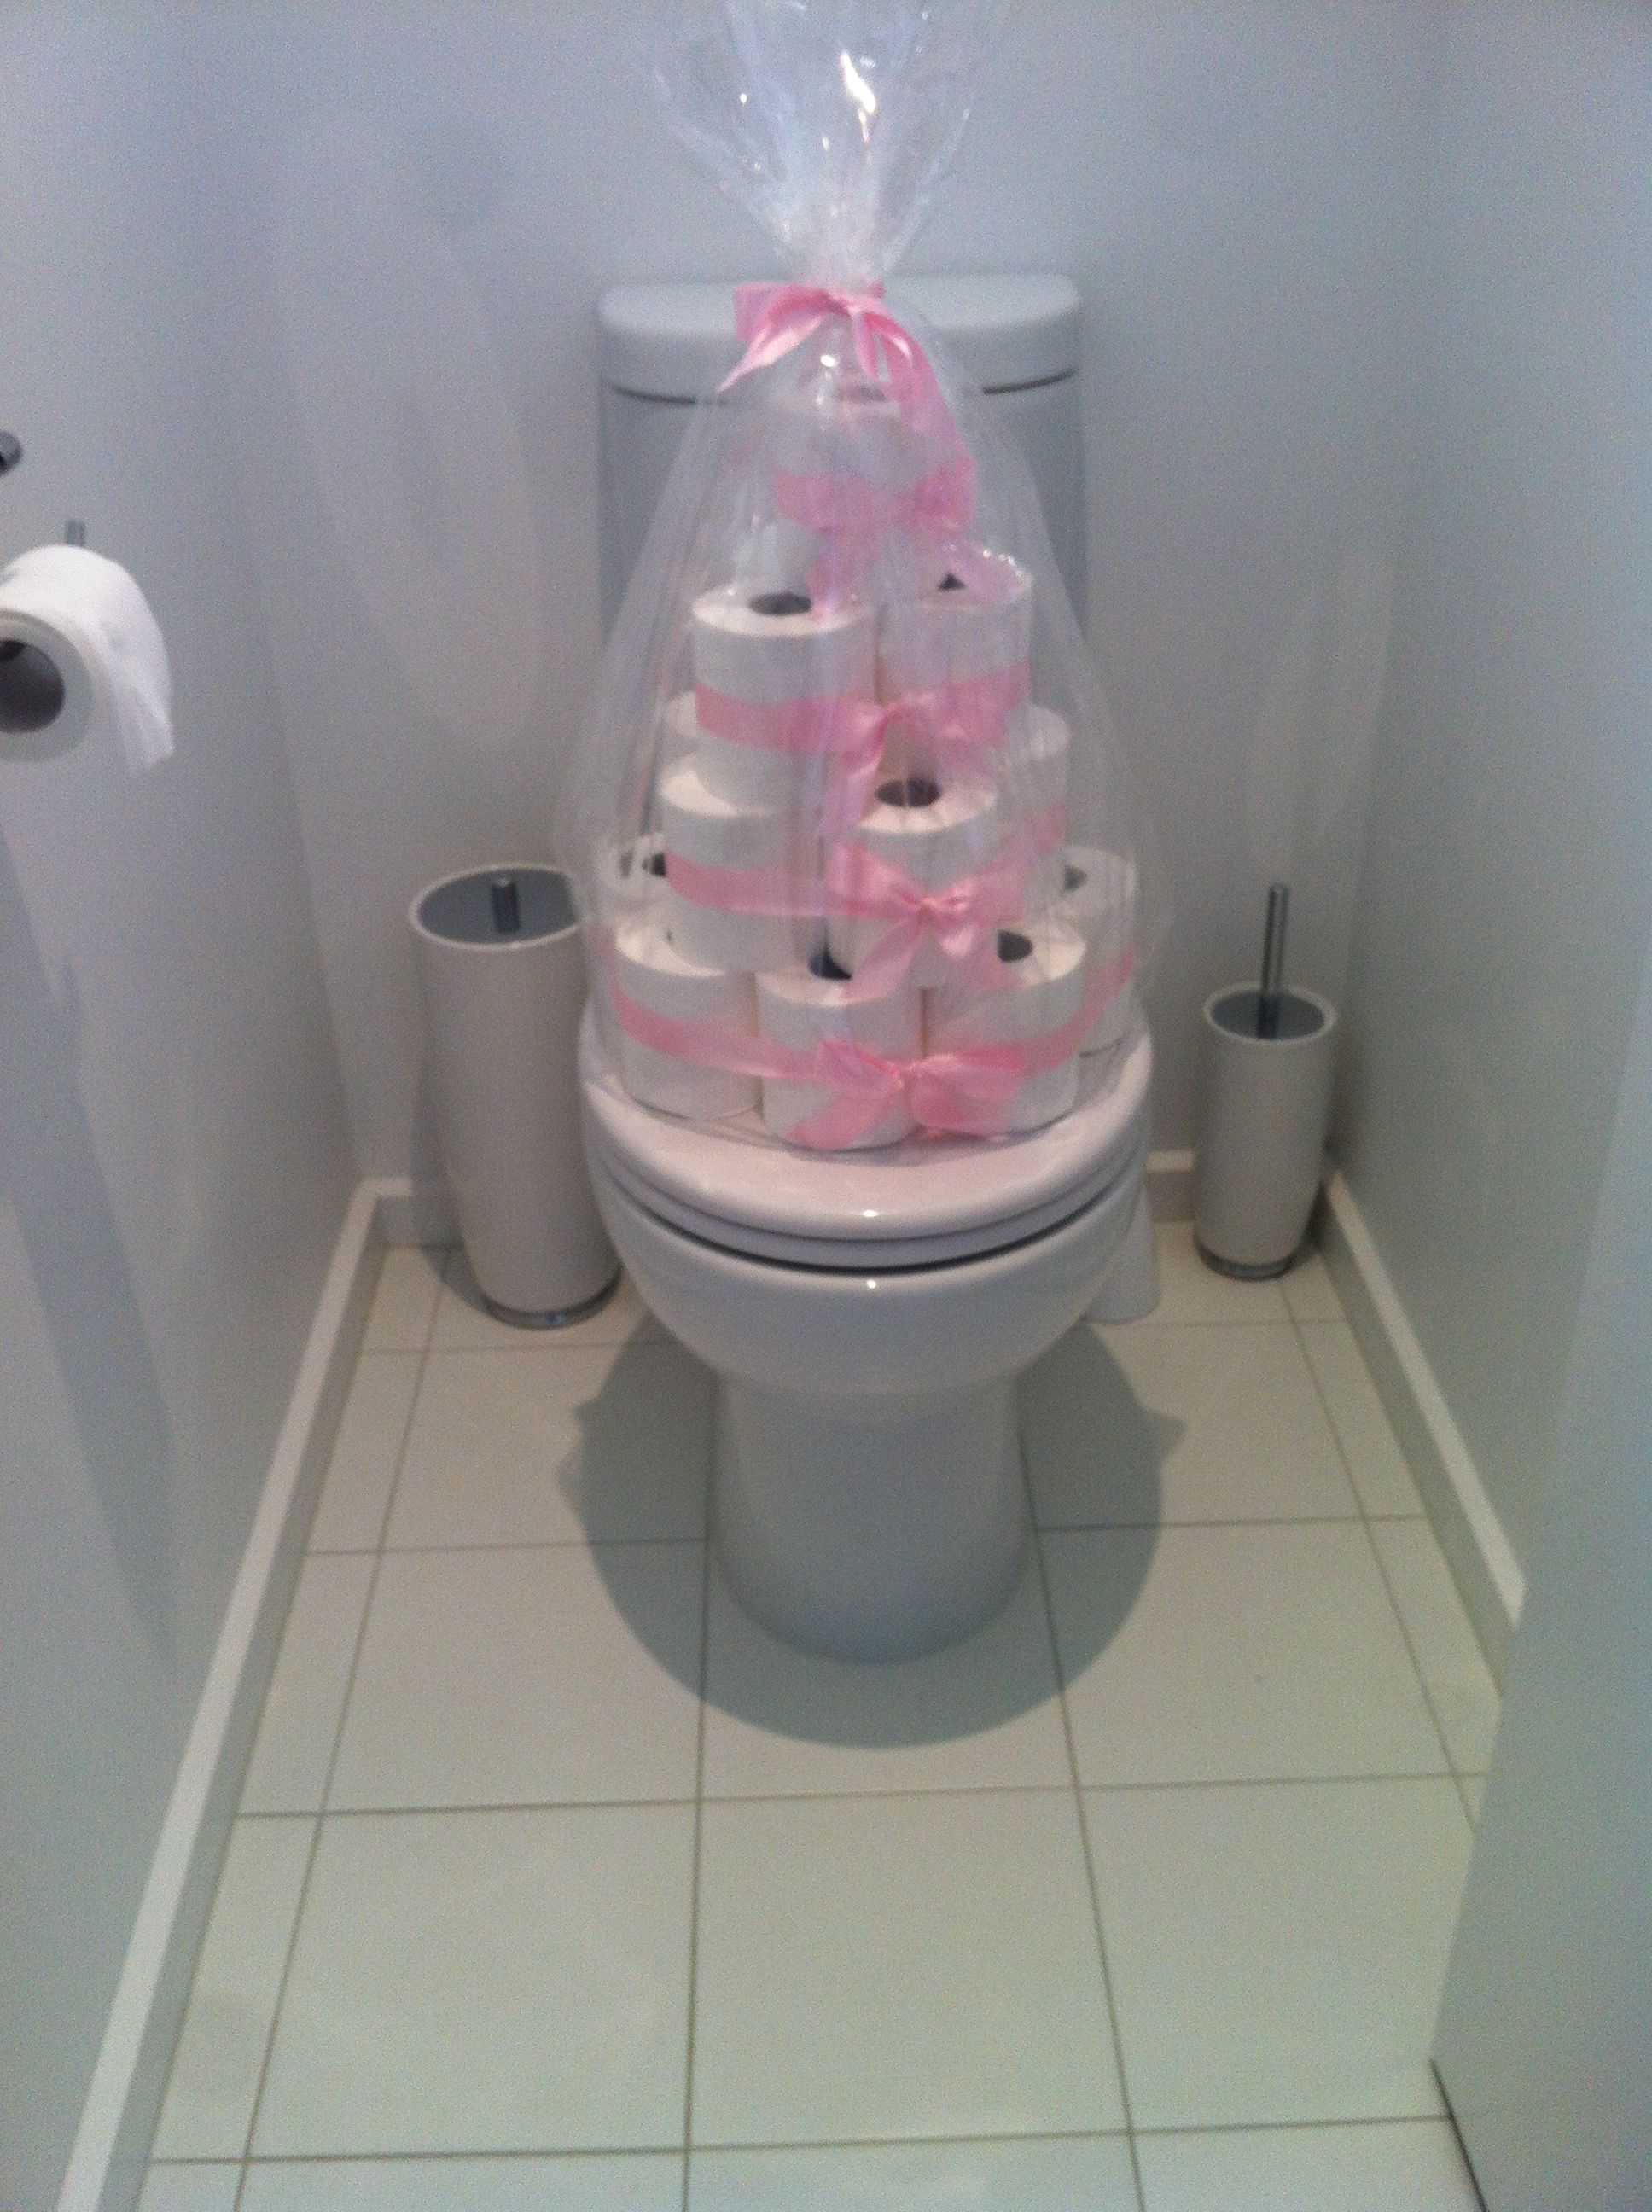 Housewarming Gift For Sister Housewarming Gift Love This Idea Who Can 39t Use Toilet